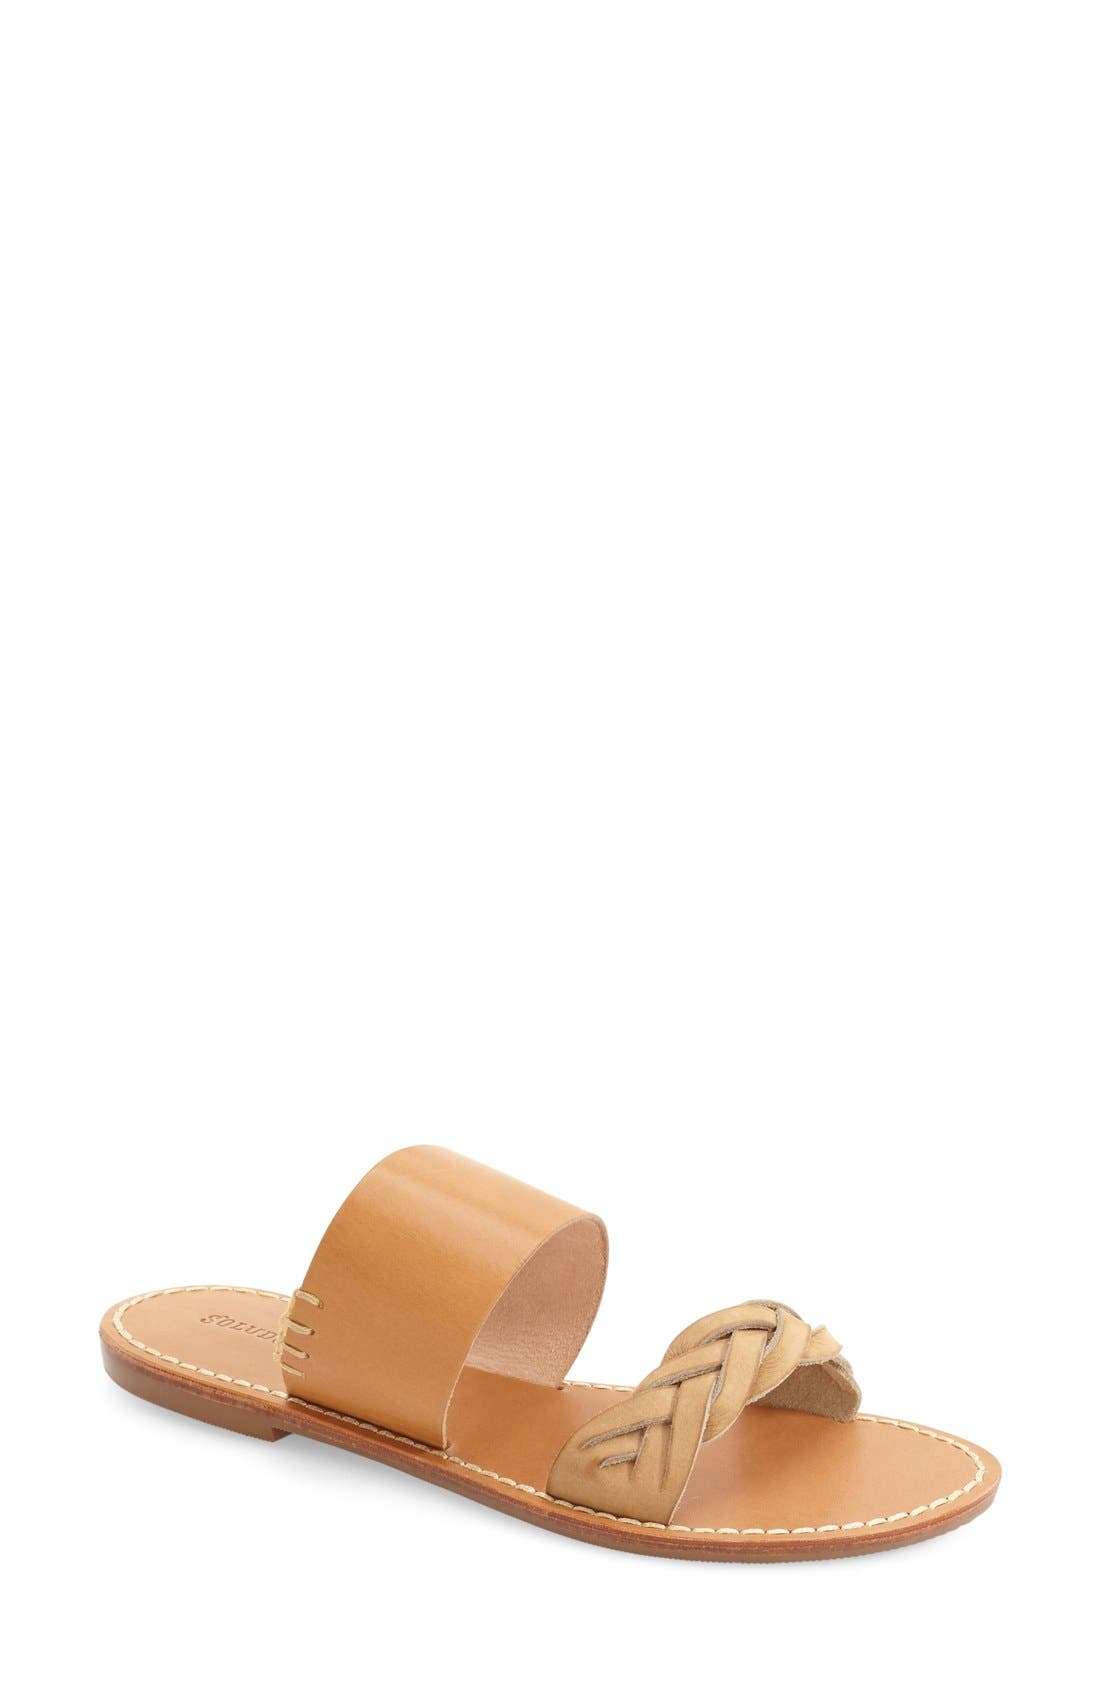 SOLUDOS Slide Sandal, Main, color, ACORN/ BROWN LEATHER